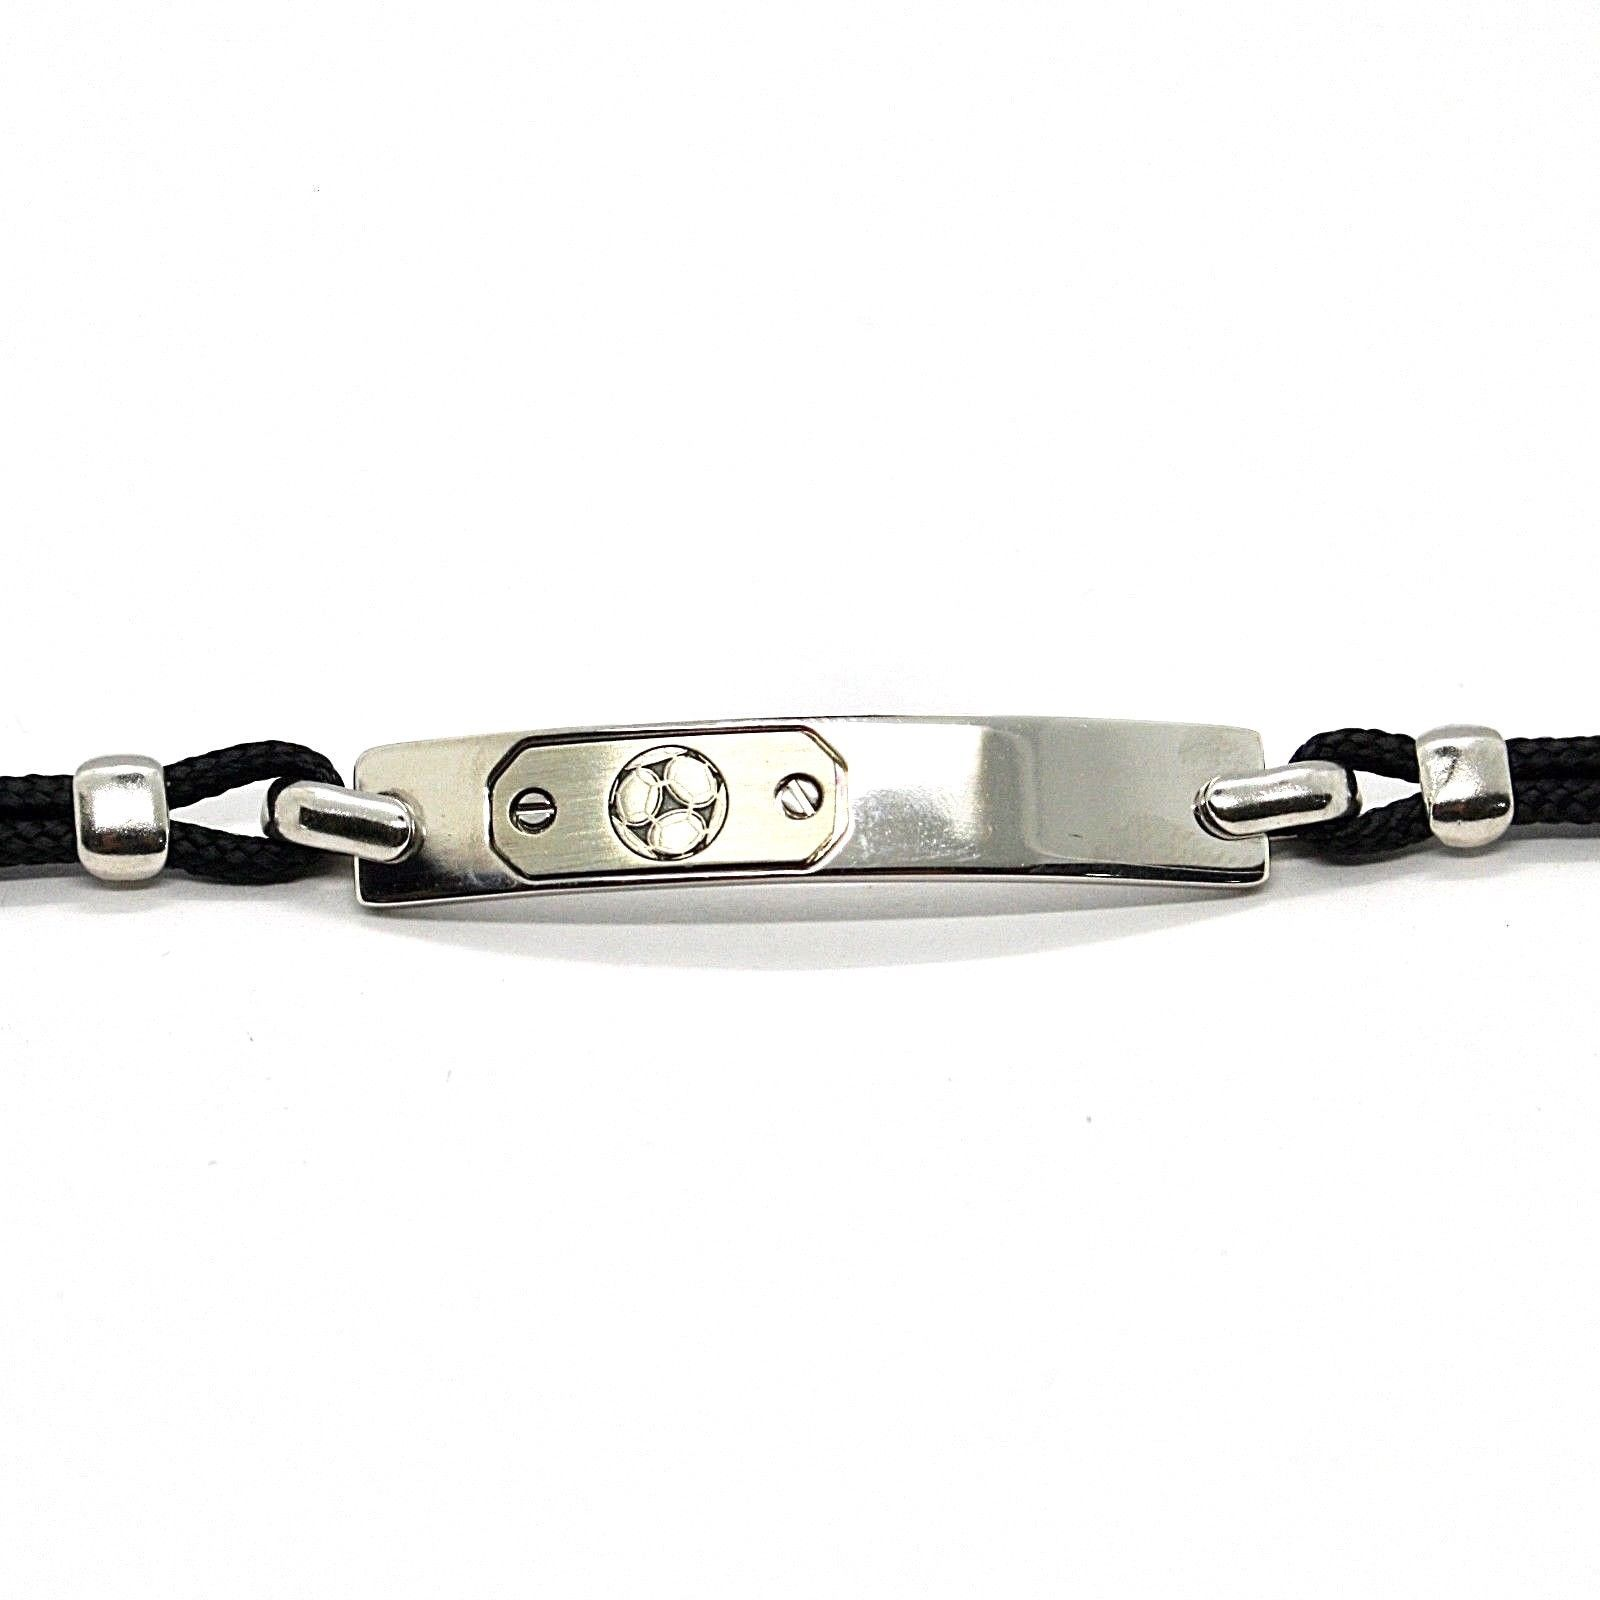 SILVER 925 BRACELET RHODIUM PLATE WITH SOCCER BALL AND ROPE 7 1/8in